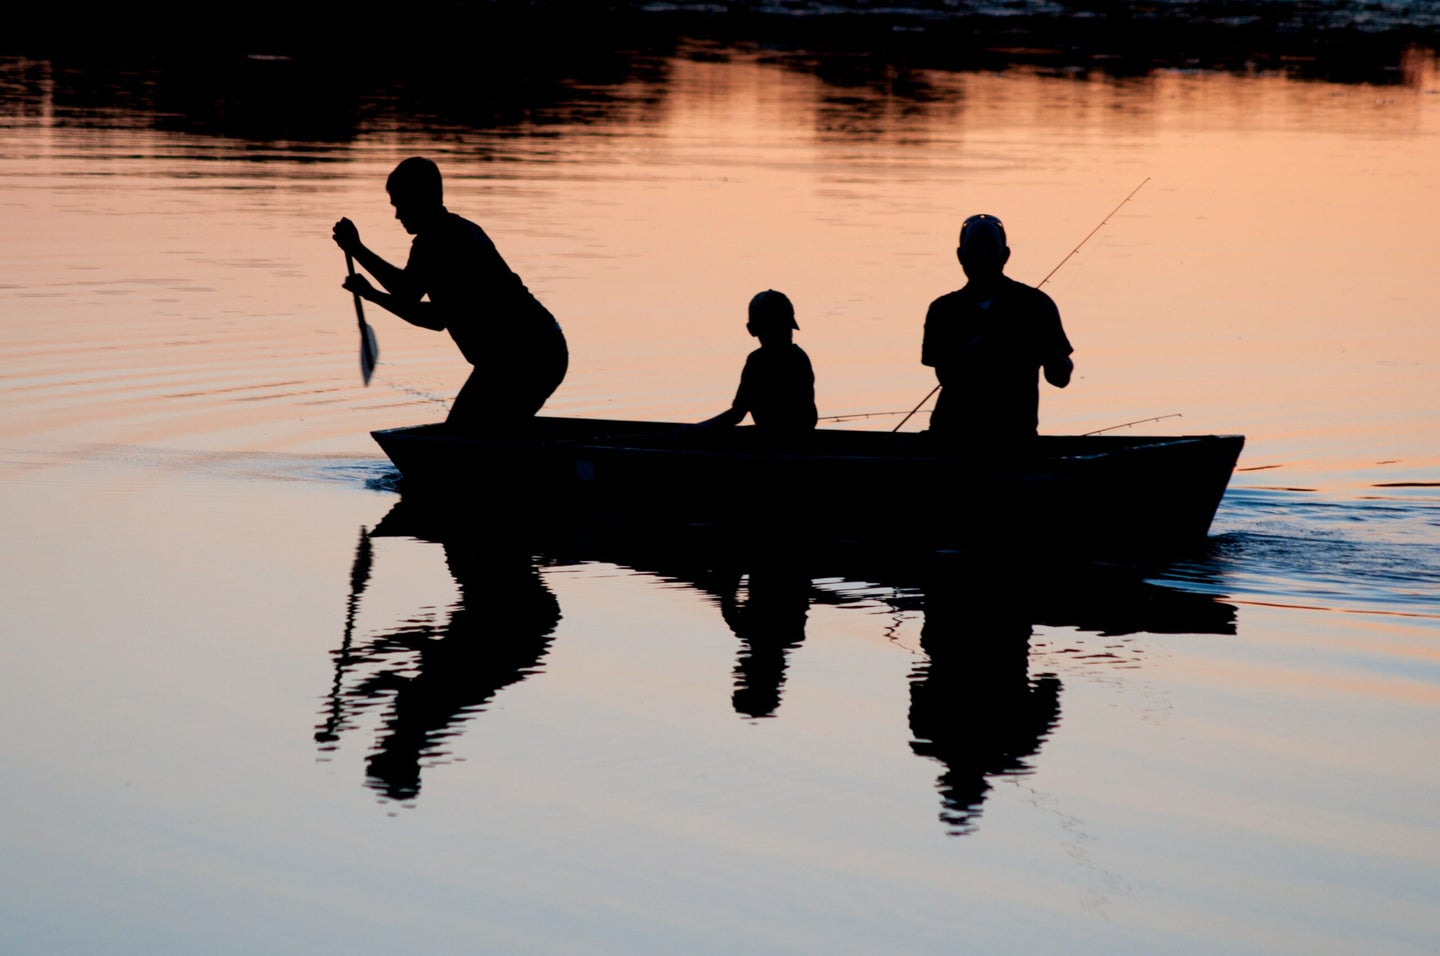 Three people in a boat at sunset.